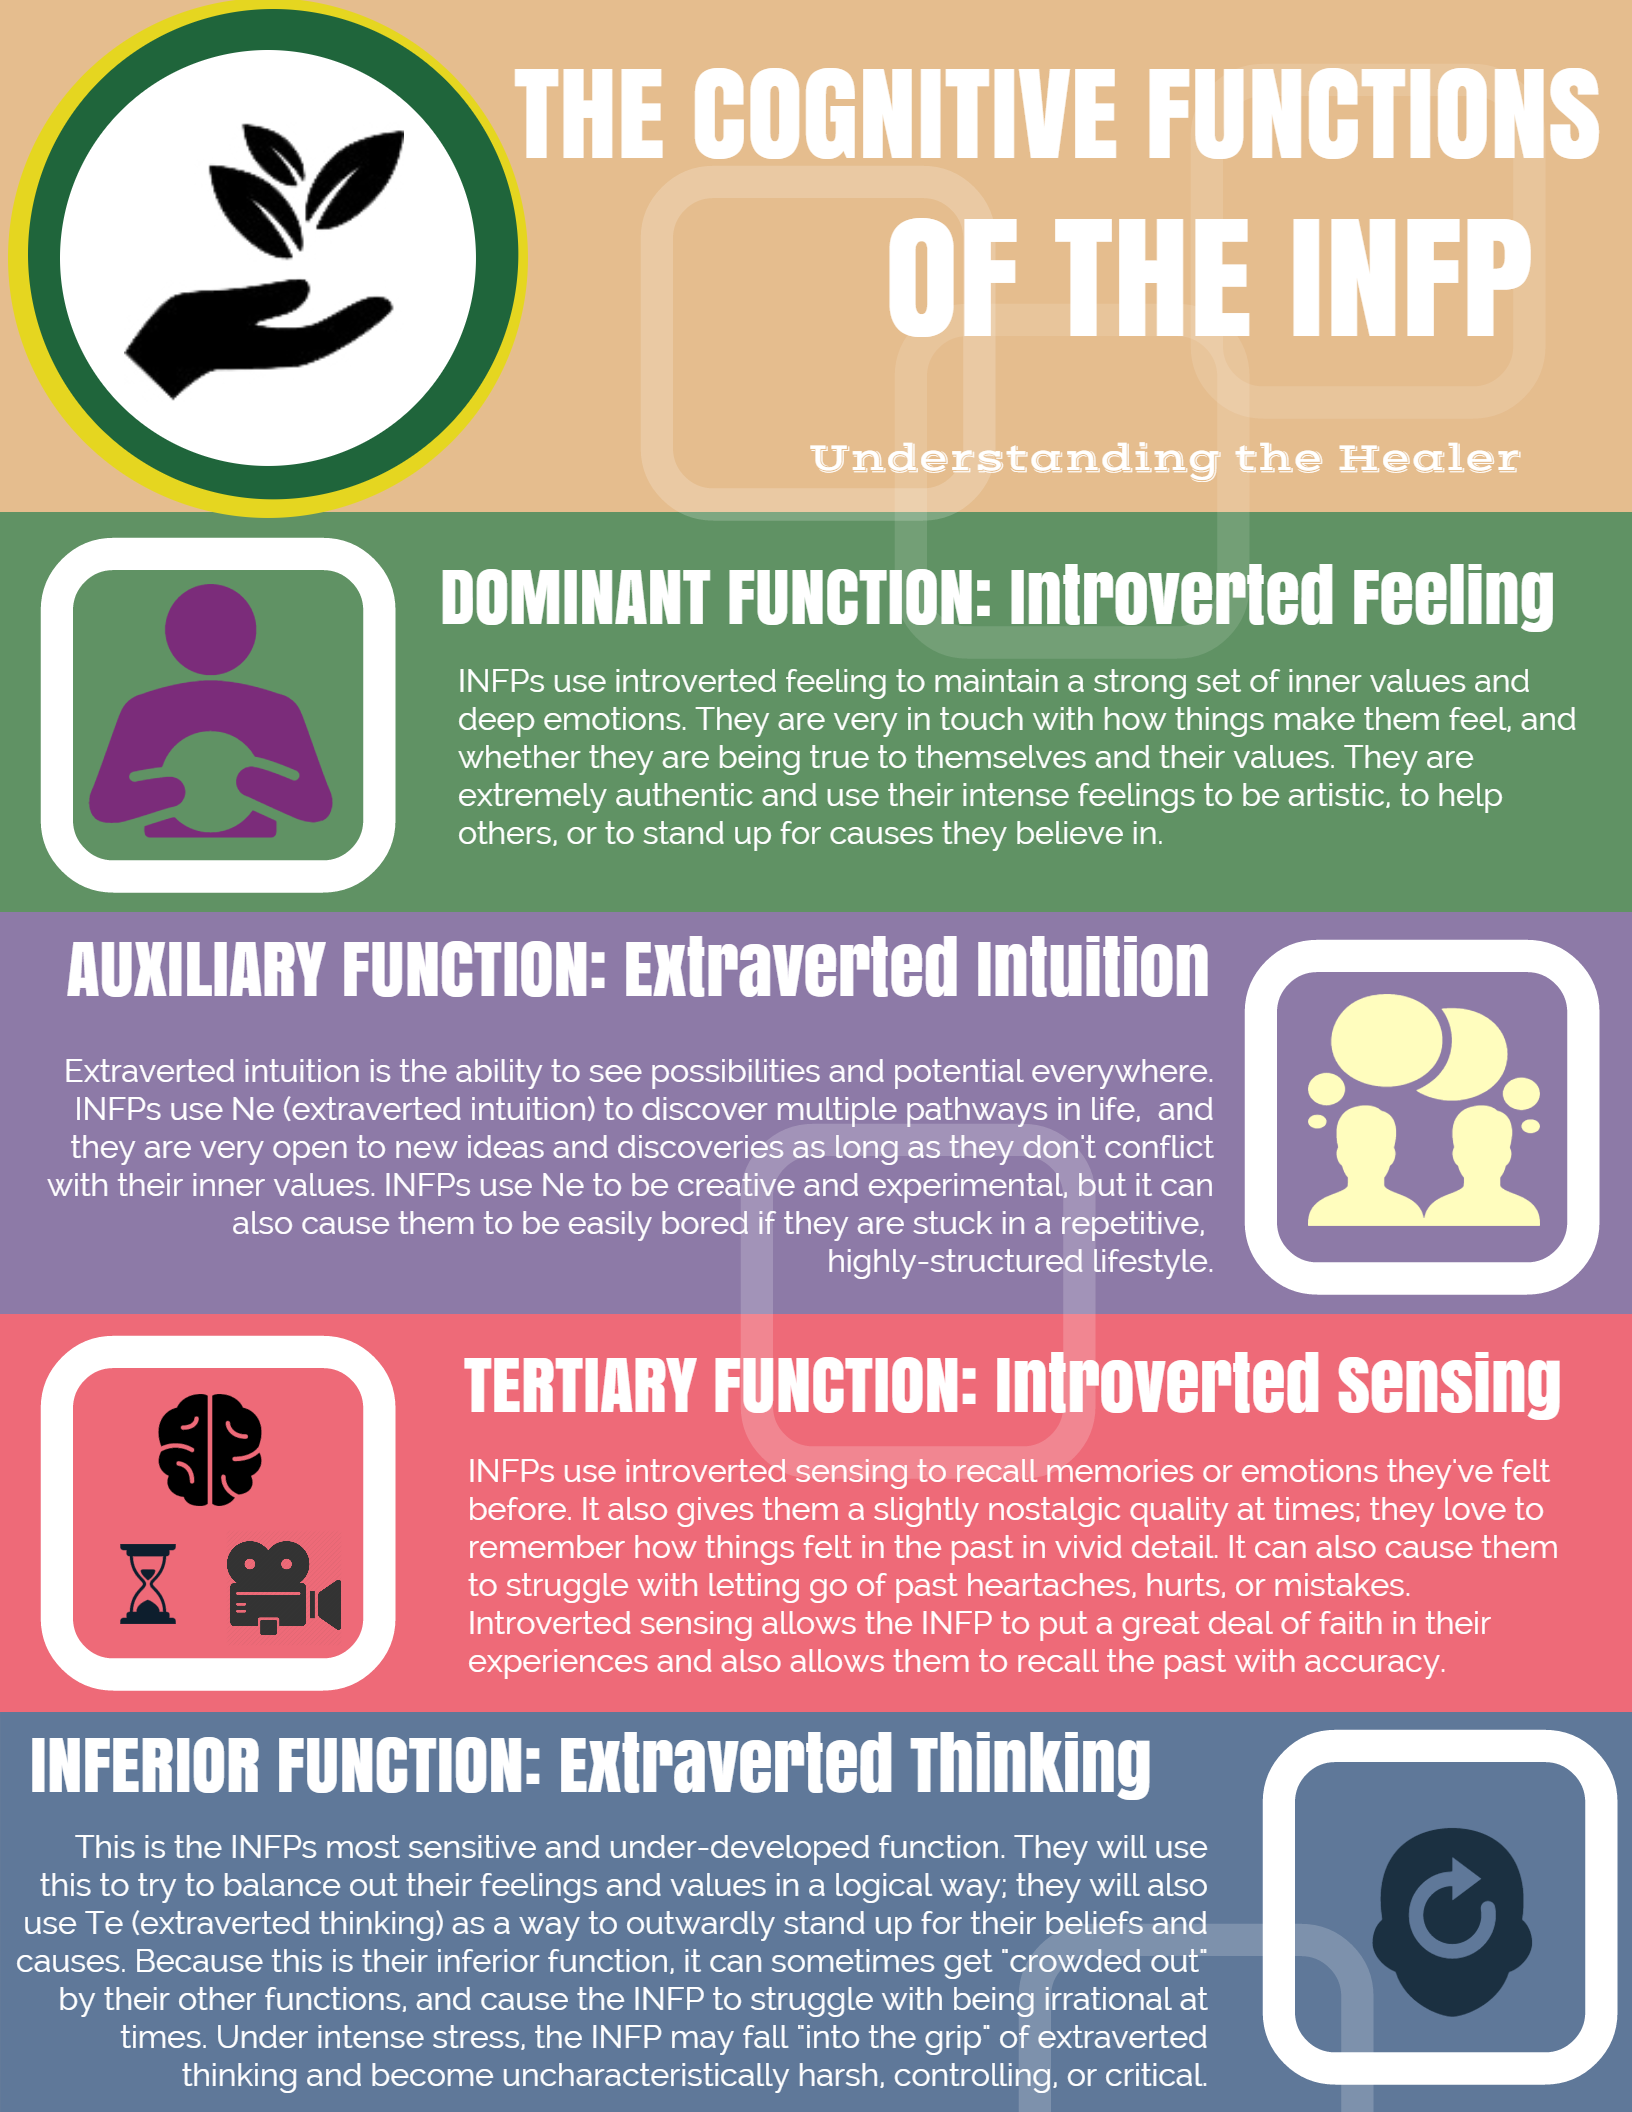 estj dating infj The infj personality type produces some of the warmest yet most intense relationships it is also the rarest personality type you can have while the myers-briggs foundation claims that all.